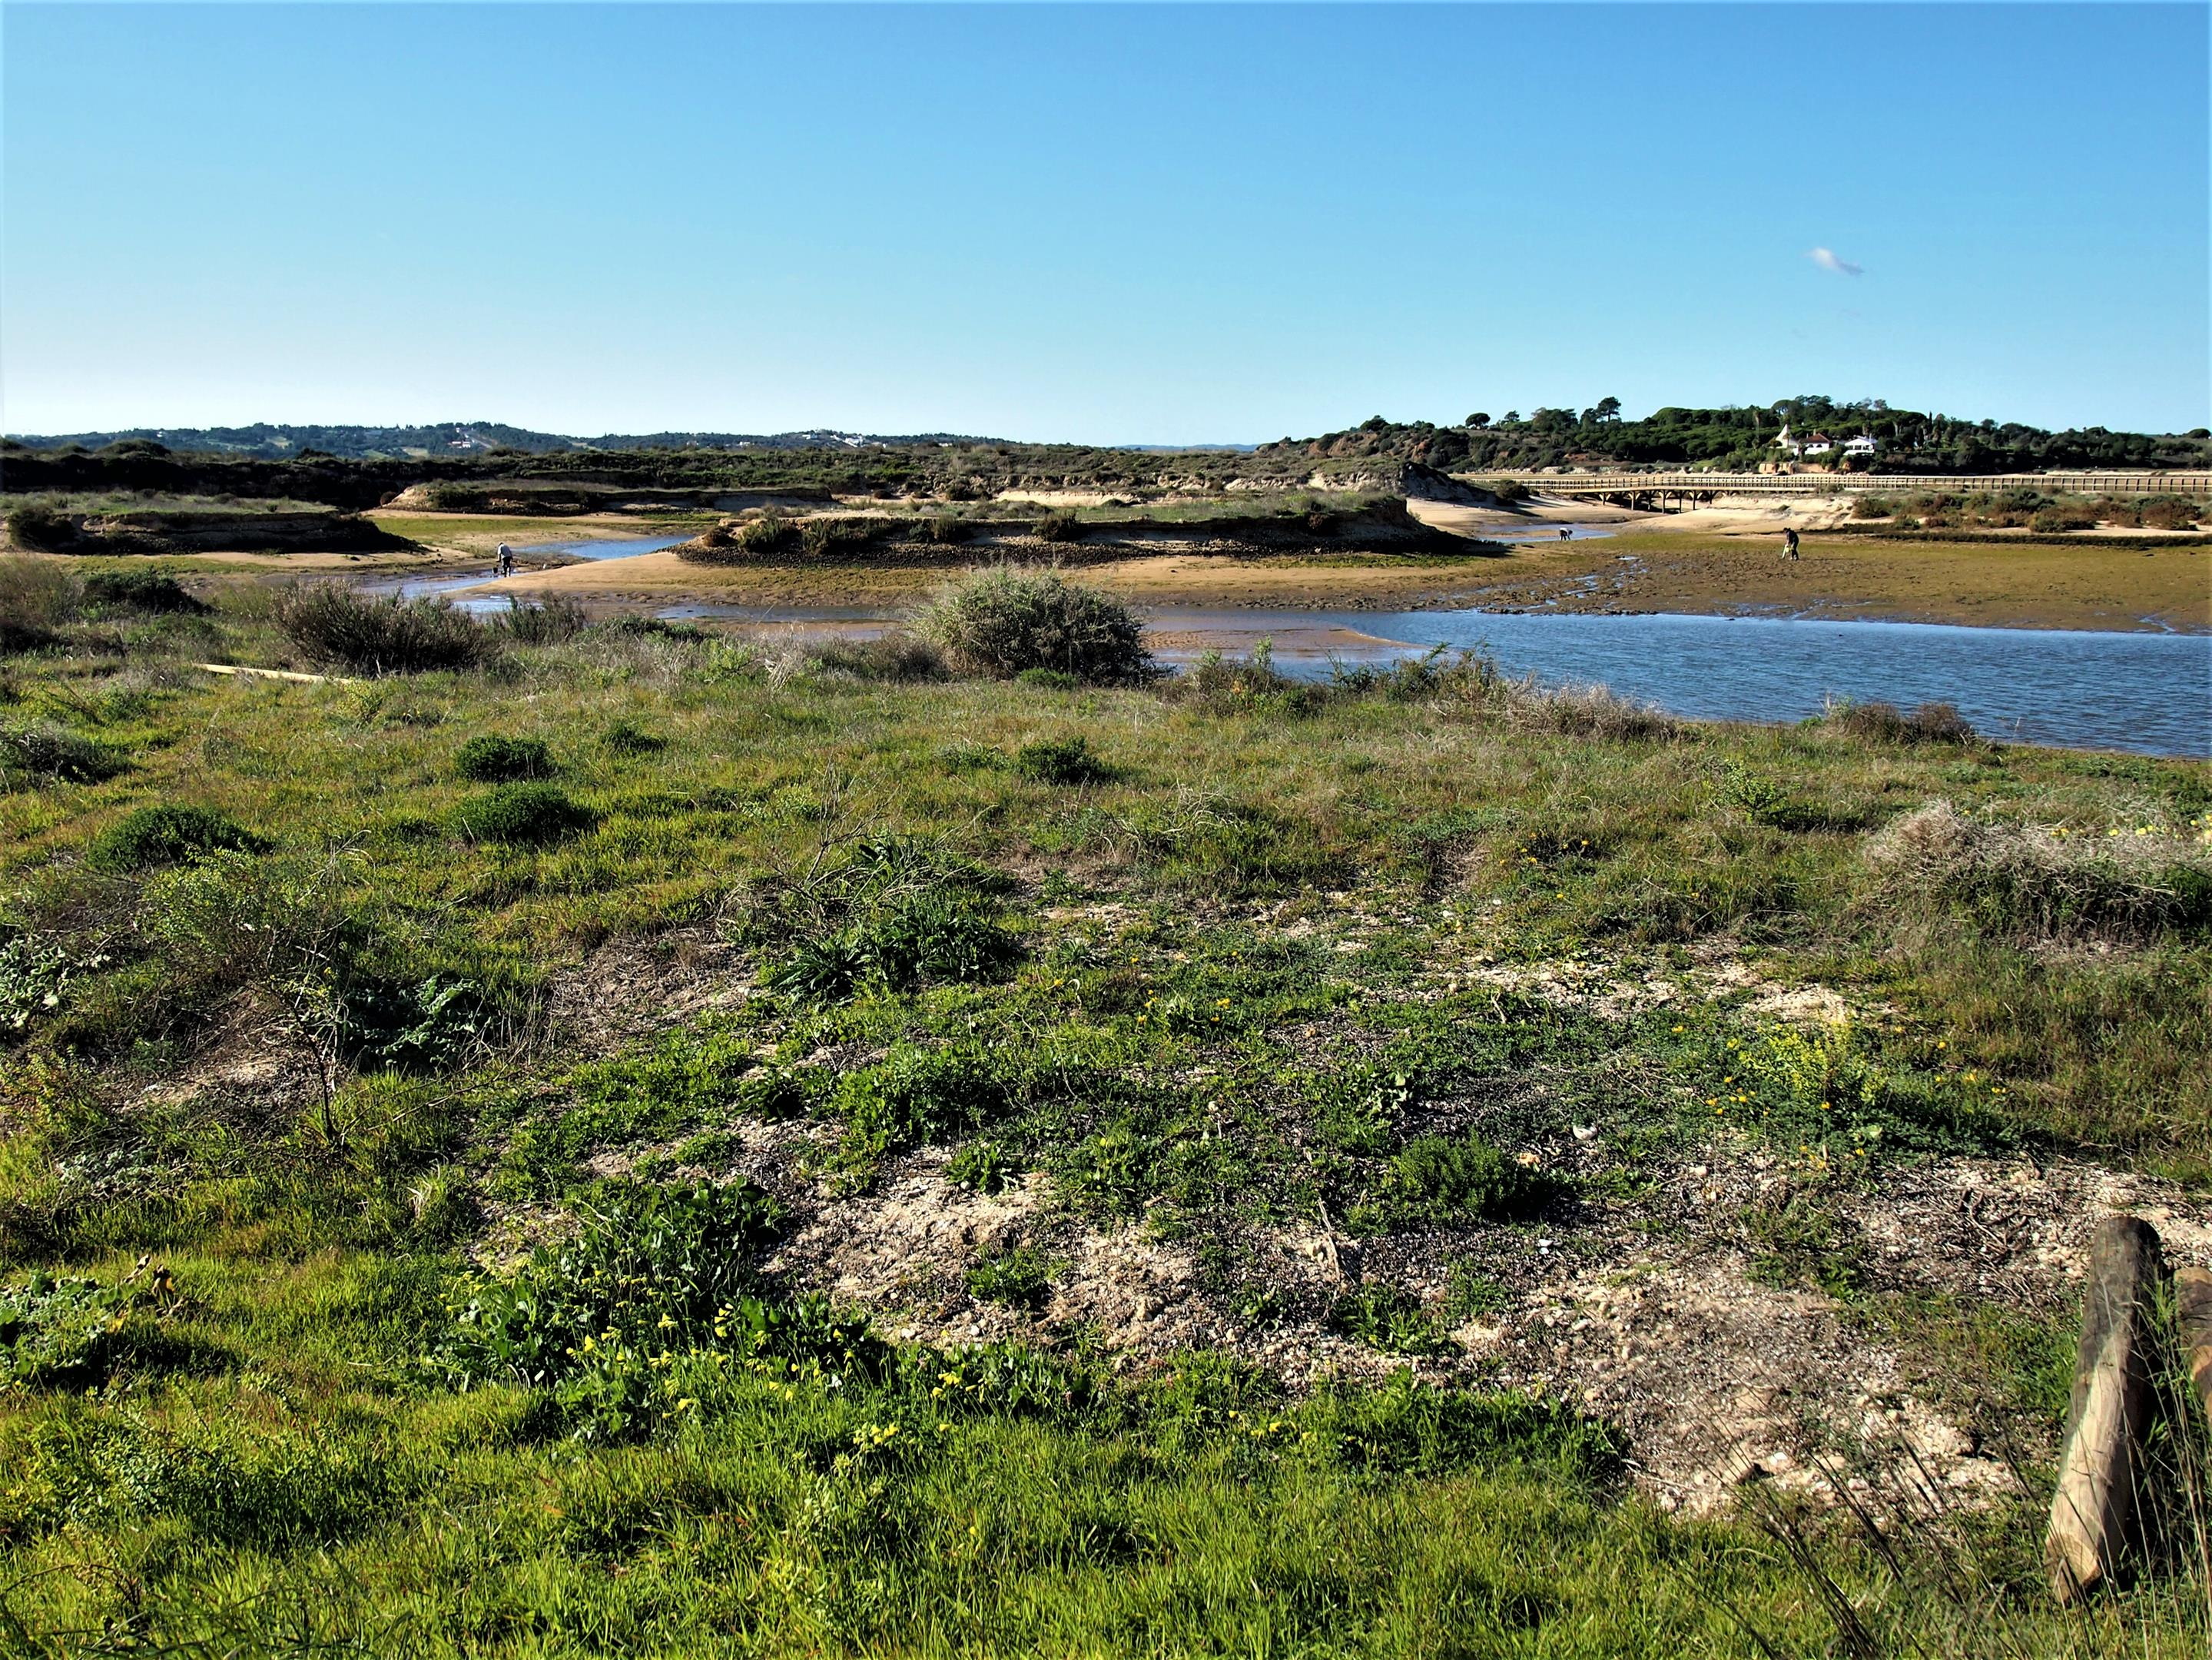 Ria de Alvor nature reserve, with the boardwalk in the background